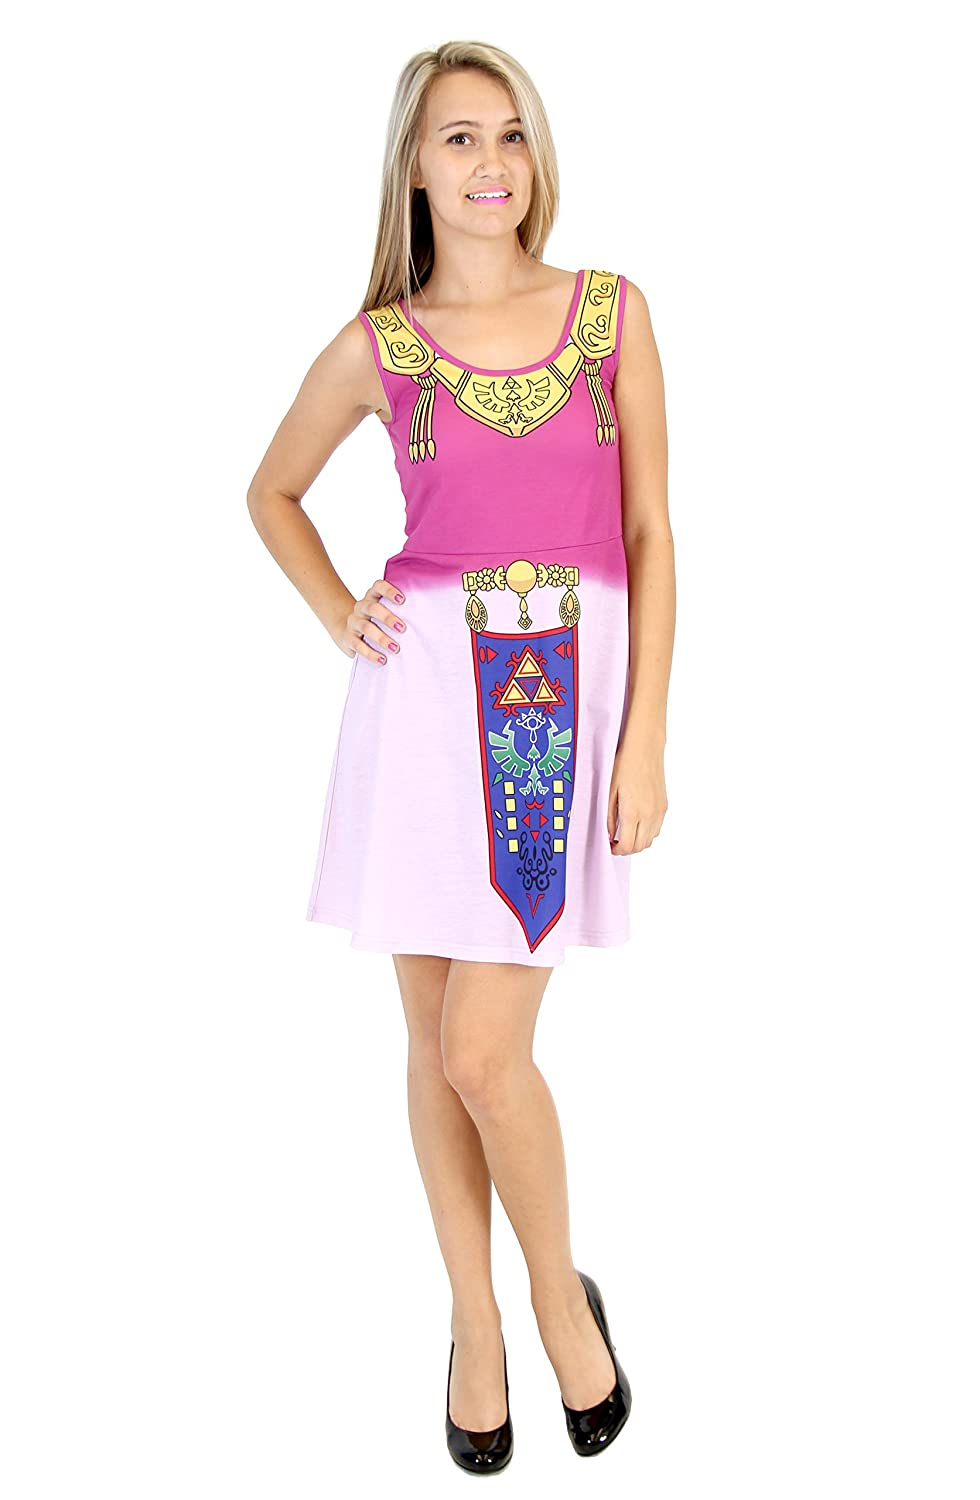 sc 1 st  Amazon.com & Amazon.com: Nintendo The Legend of Zelda Costume Tank Dress: Clothing